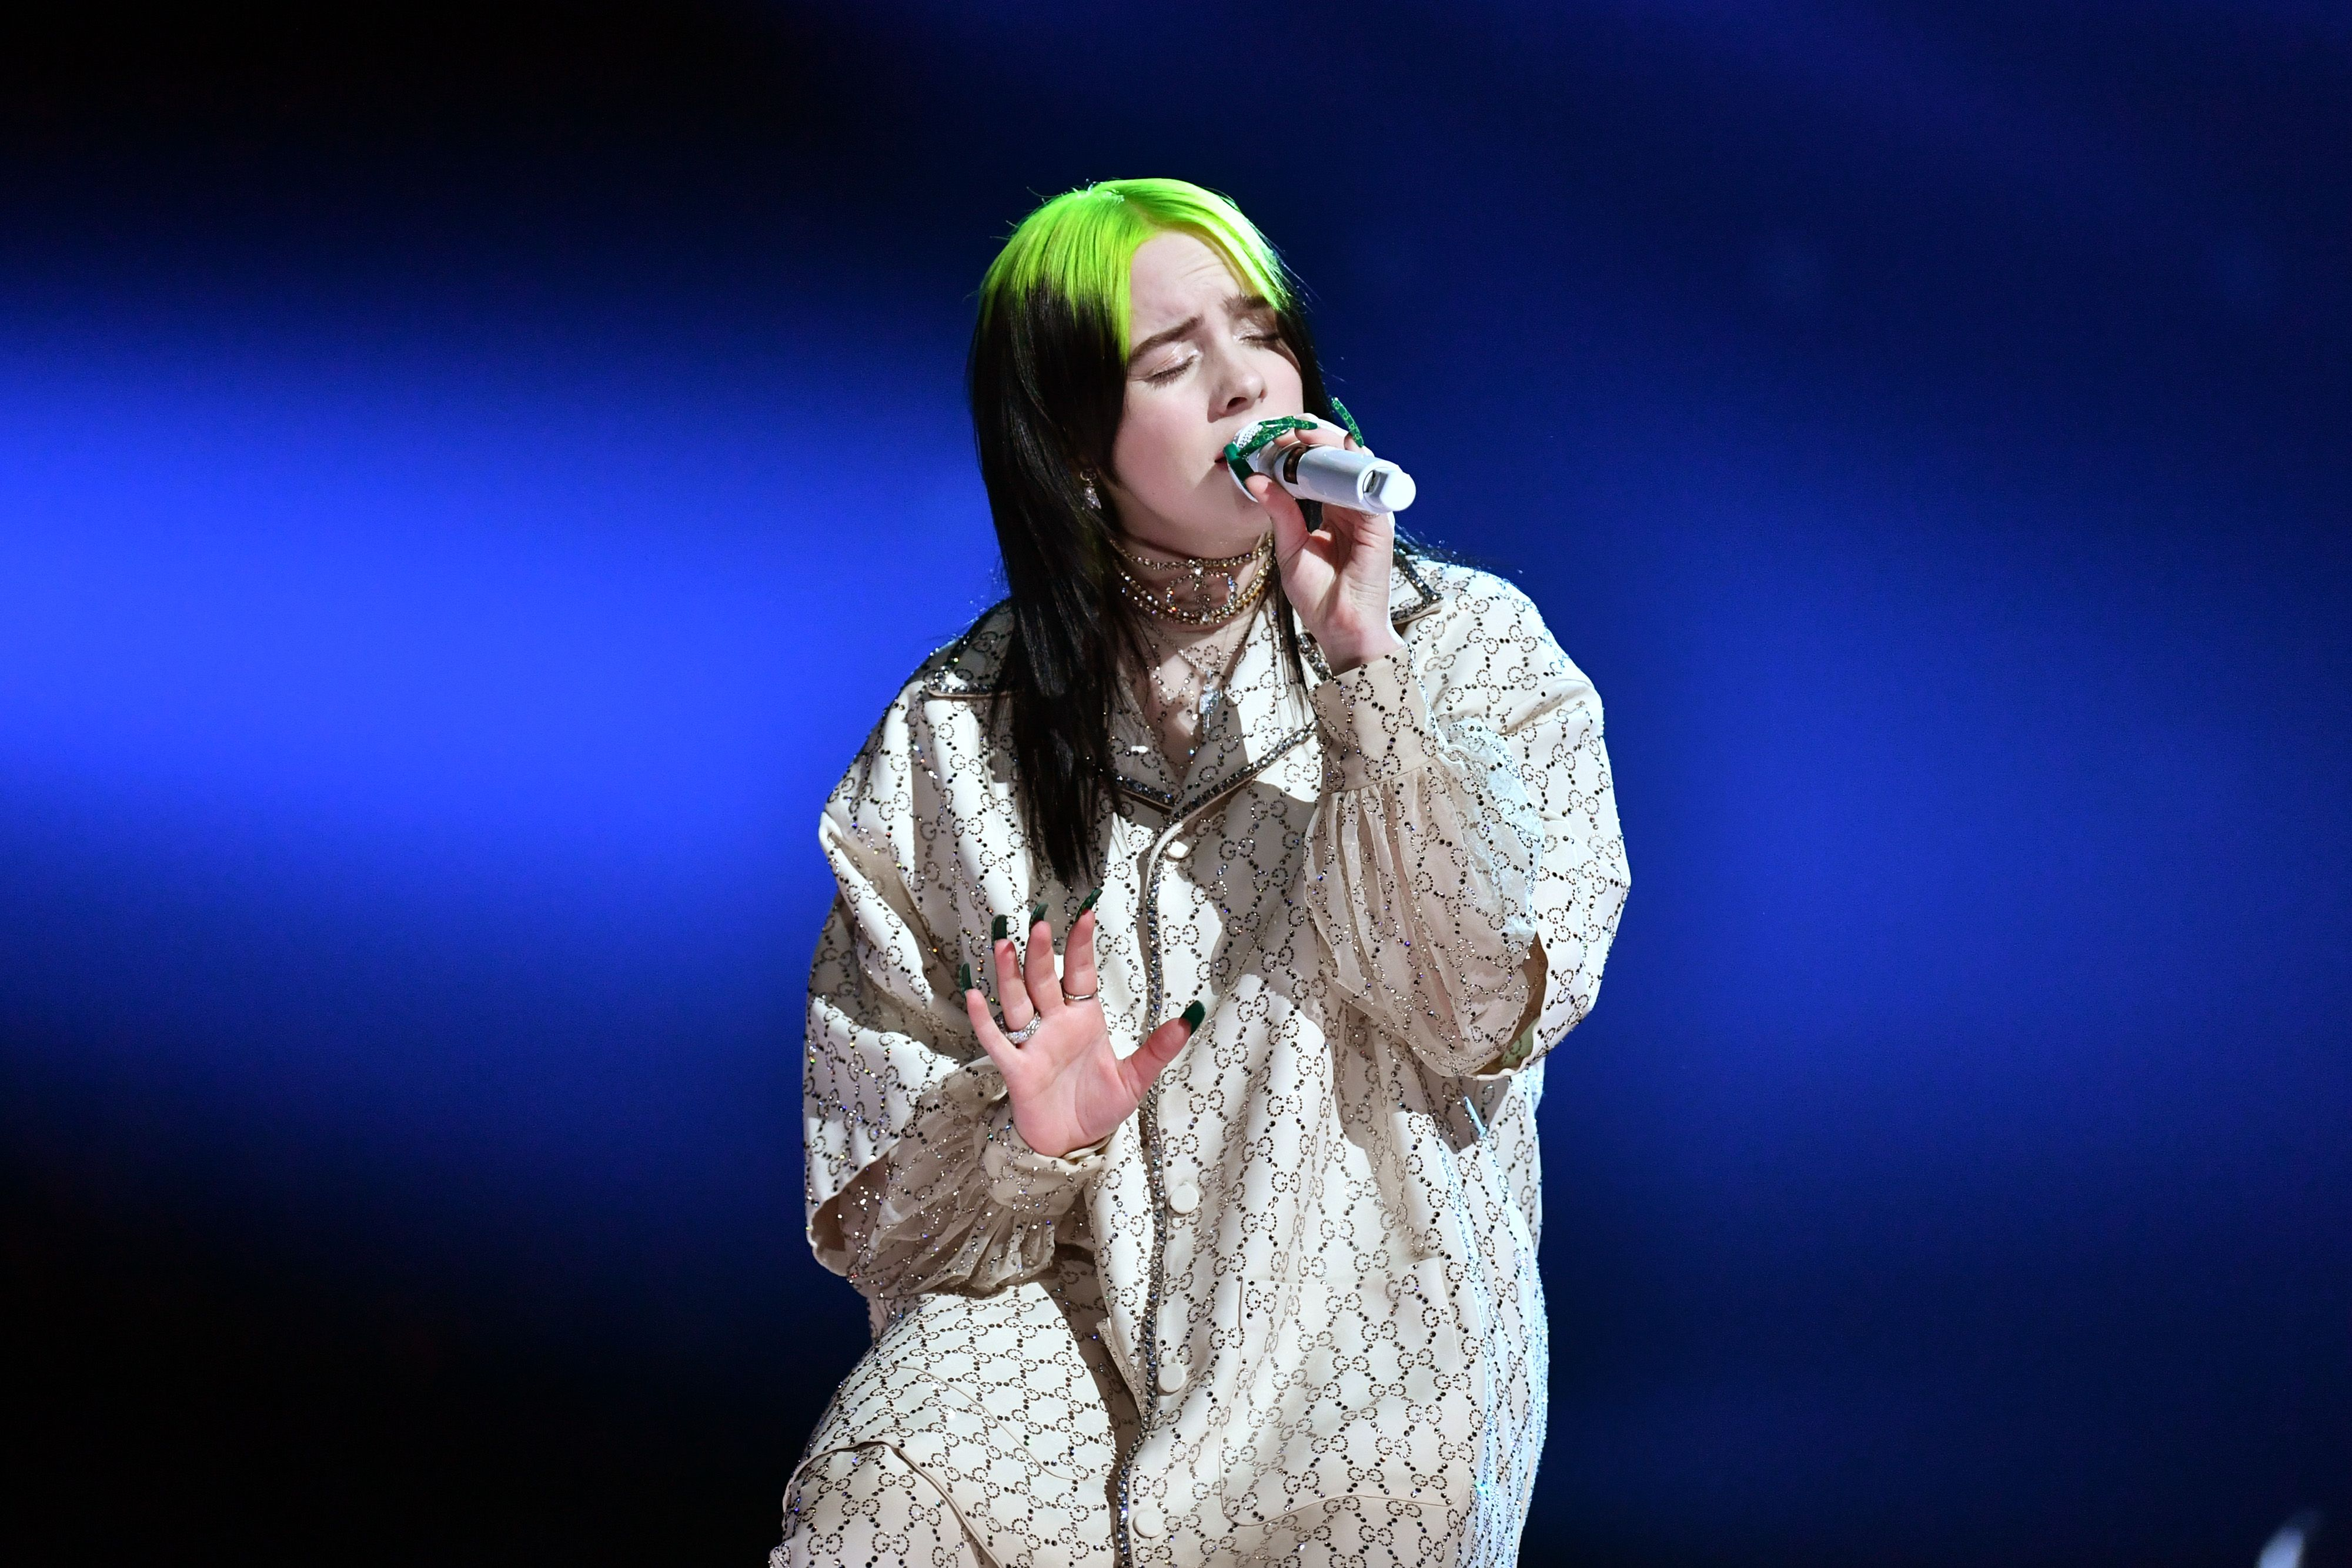 Billie Eilish Delivered the Performance of the Night at the Grammys